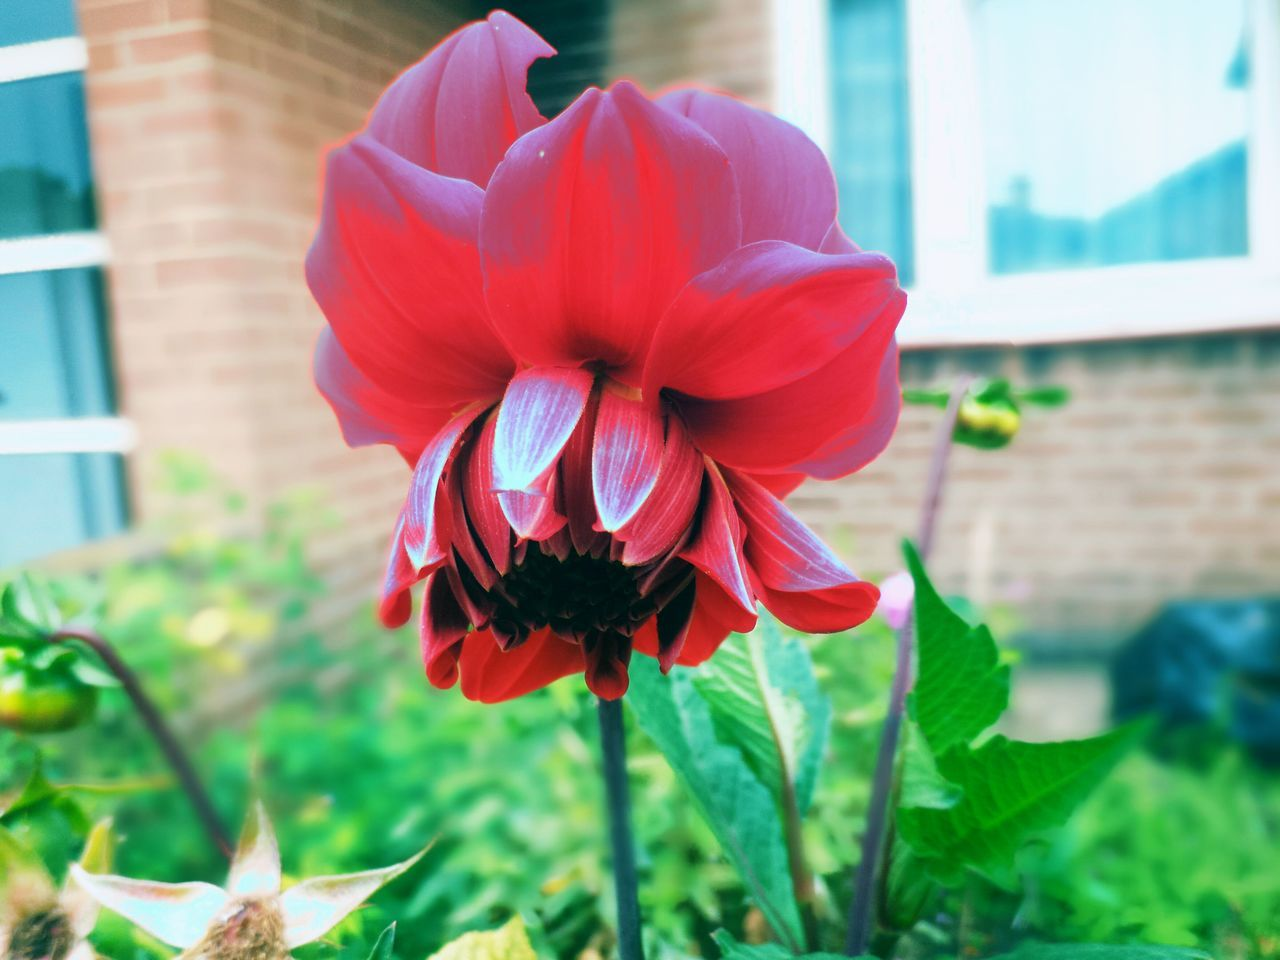 flower, petal, nature, fragility, beauty in nature, growth, flower head, plant, freshness, blooming, focus on foreground, day, outdoors, no people, close-up, red